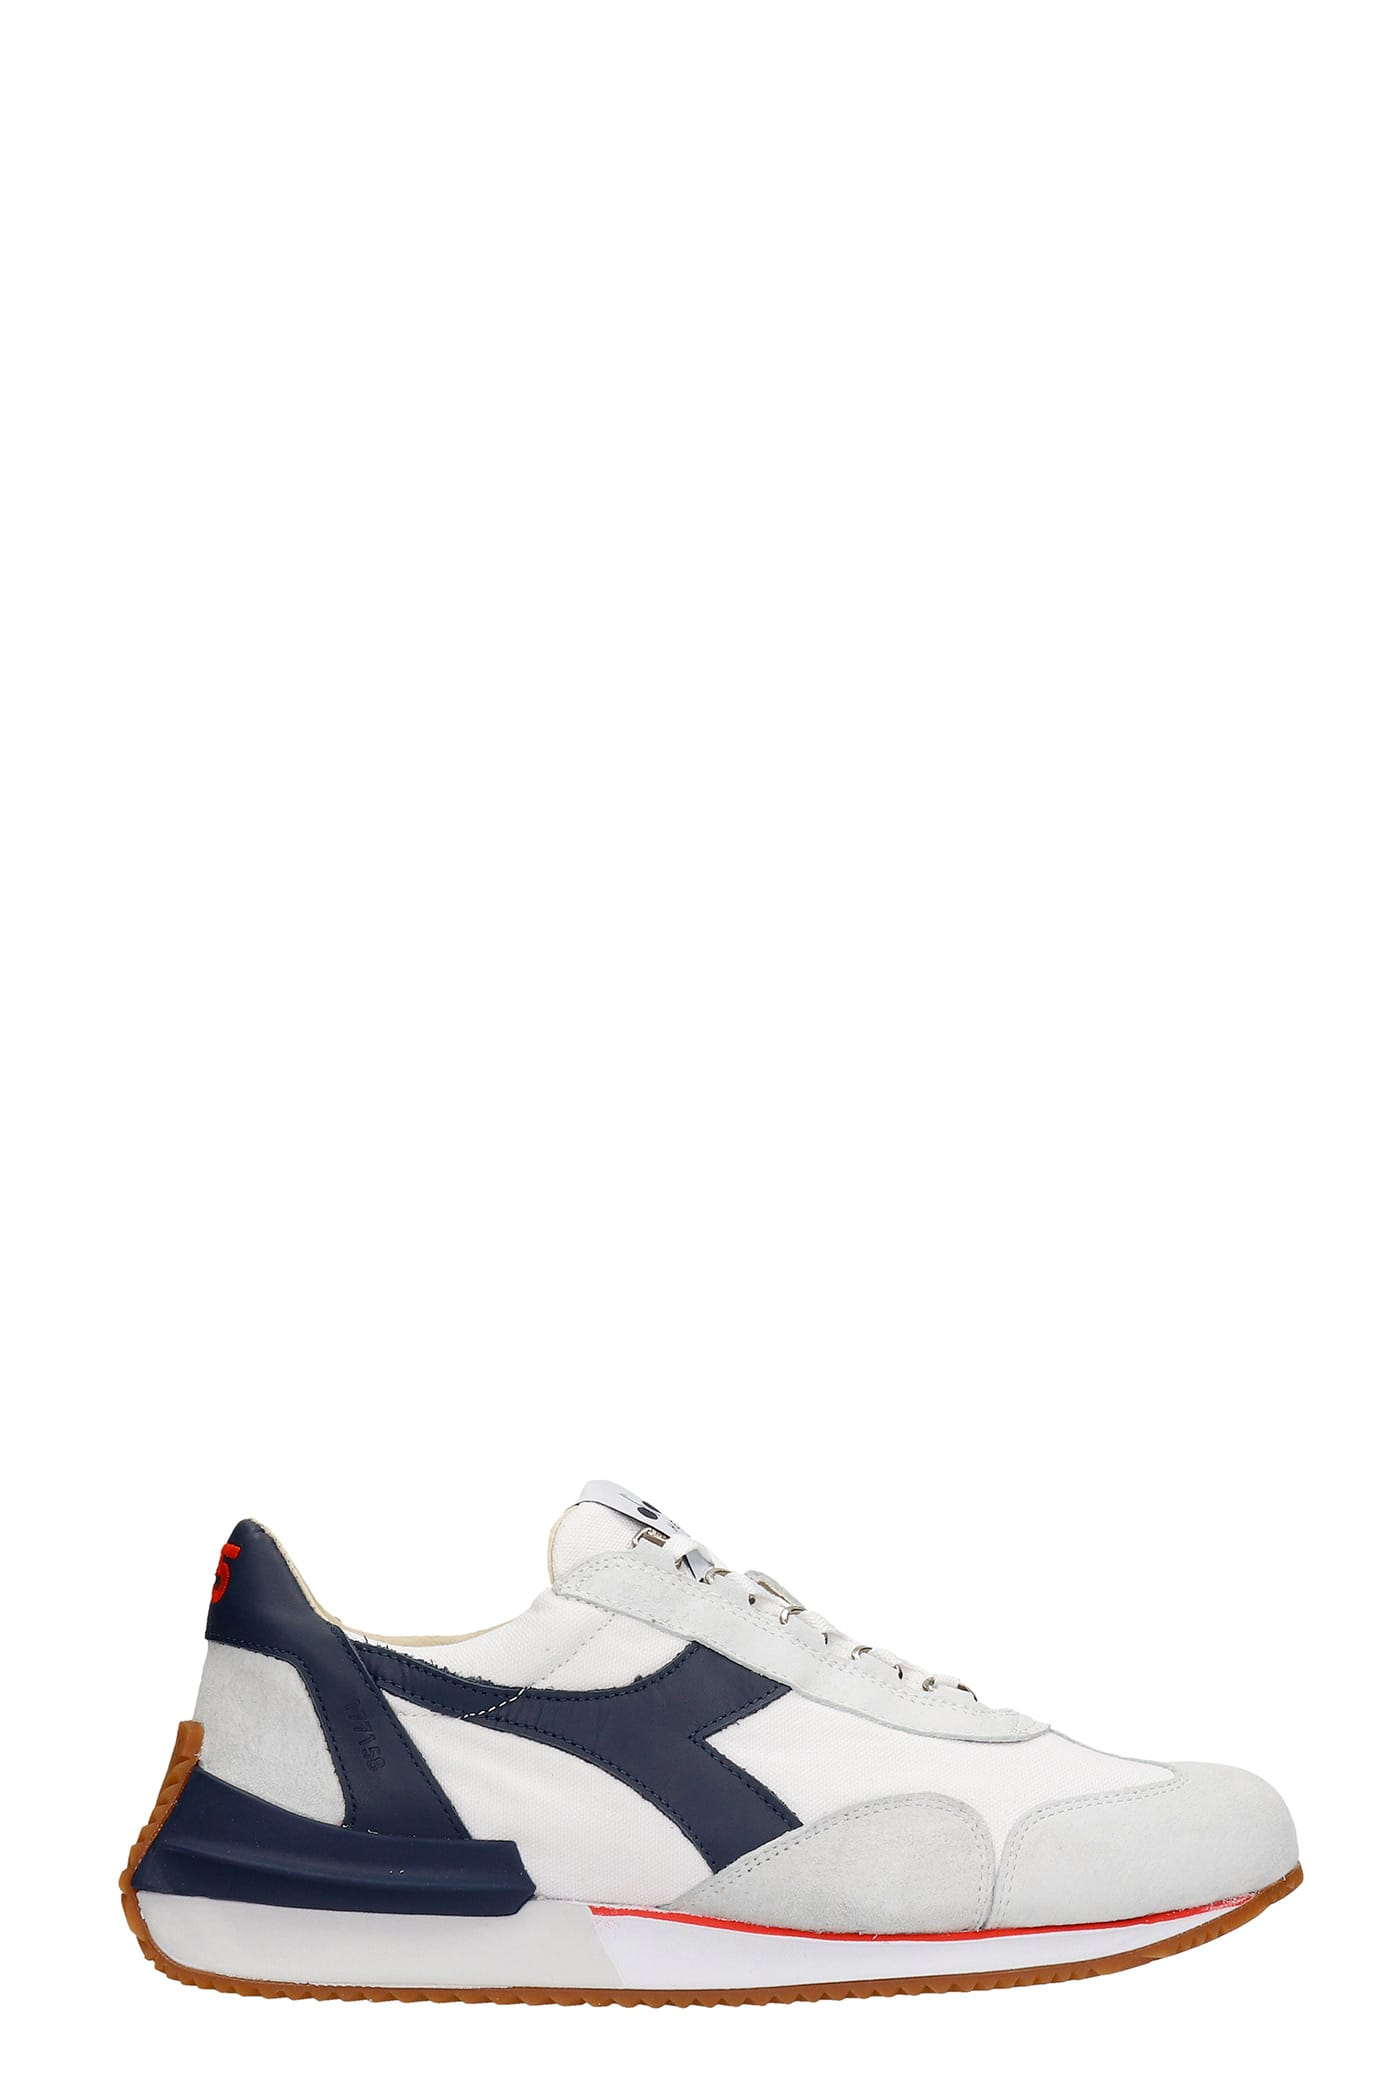 Equipe Sneakers In White Suede And Fabric